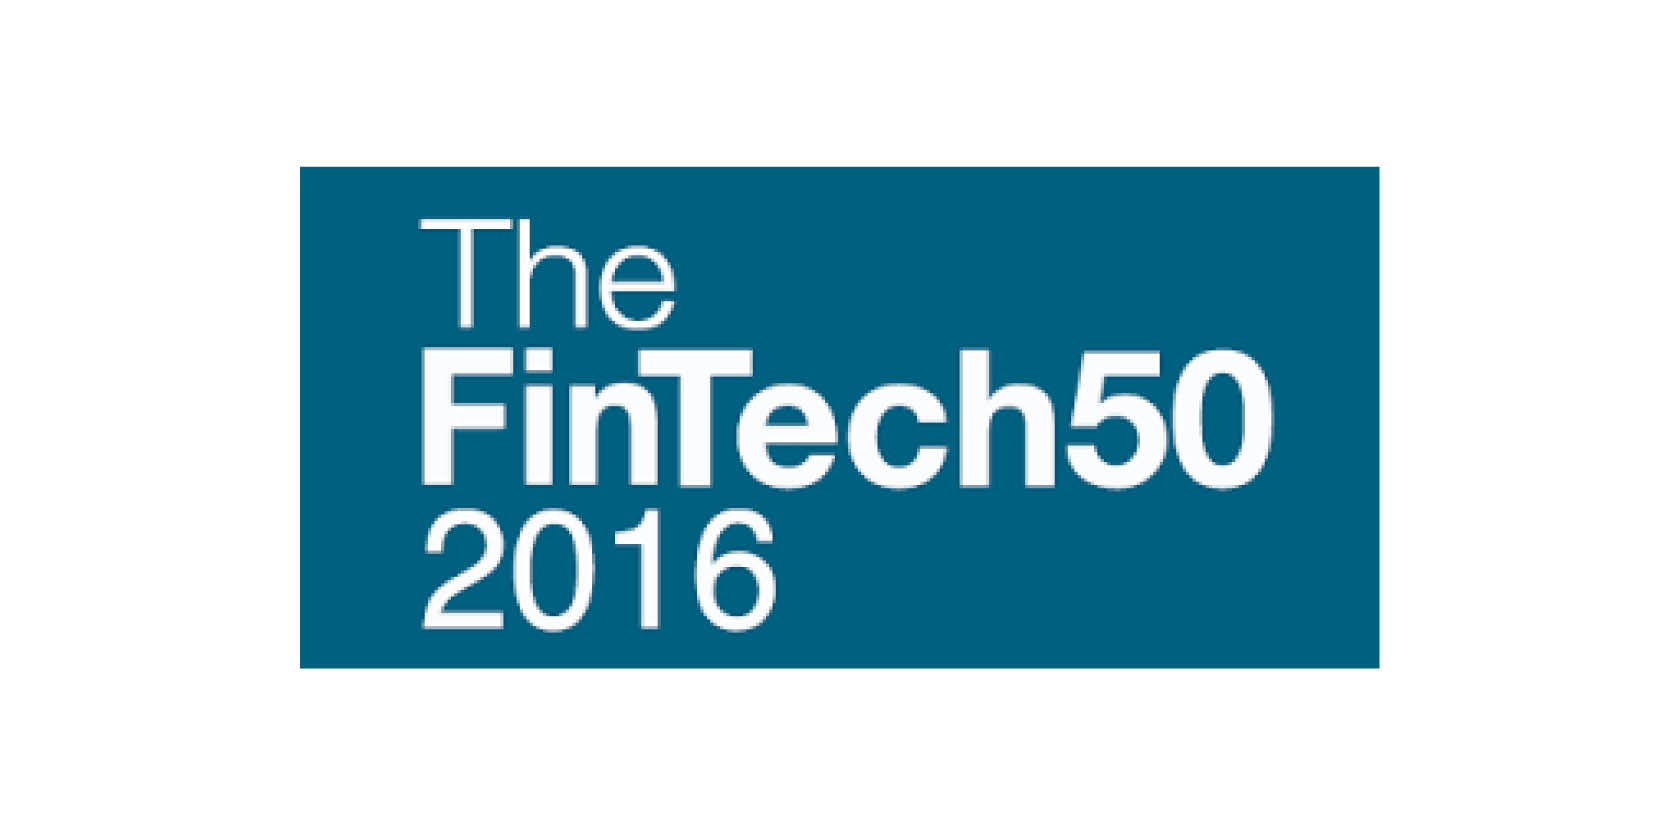 FinTechCity: Meet The FinTech50 2016